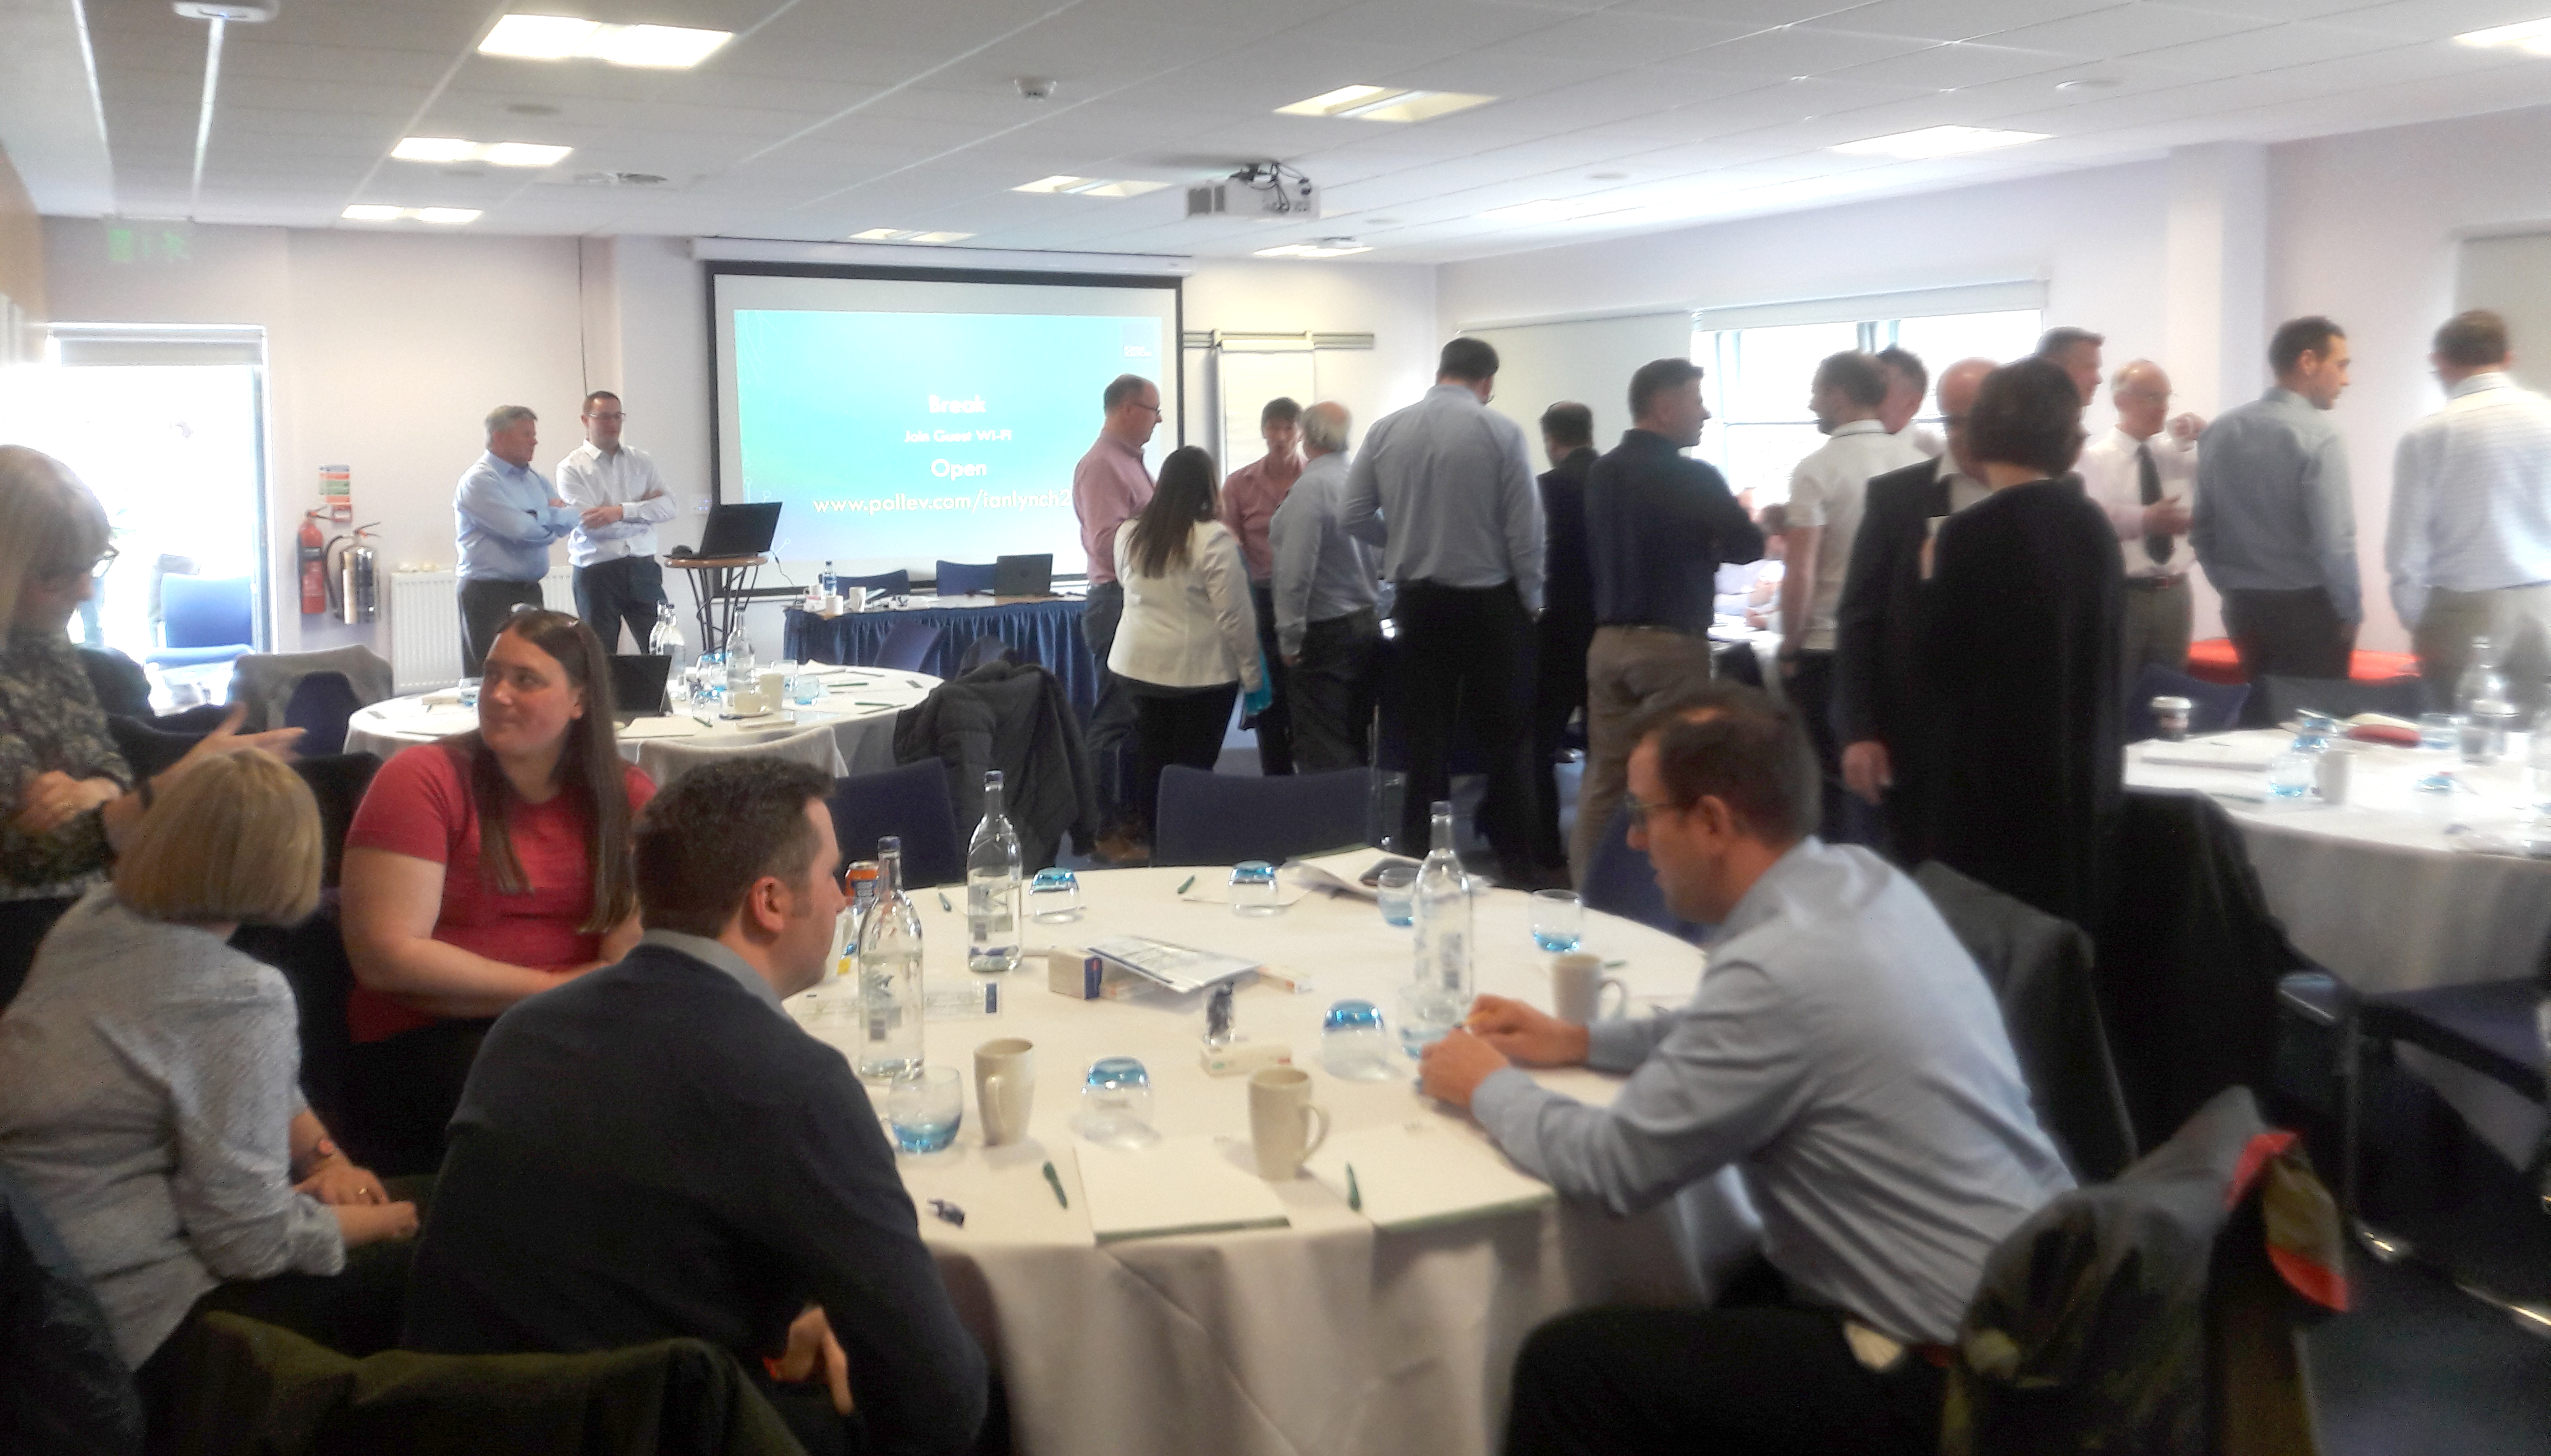 Positive Solutions completes its series of regional FMD workshops